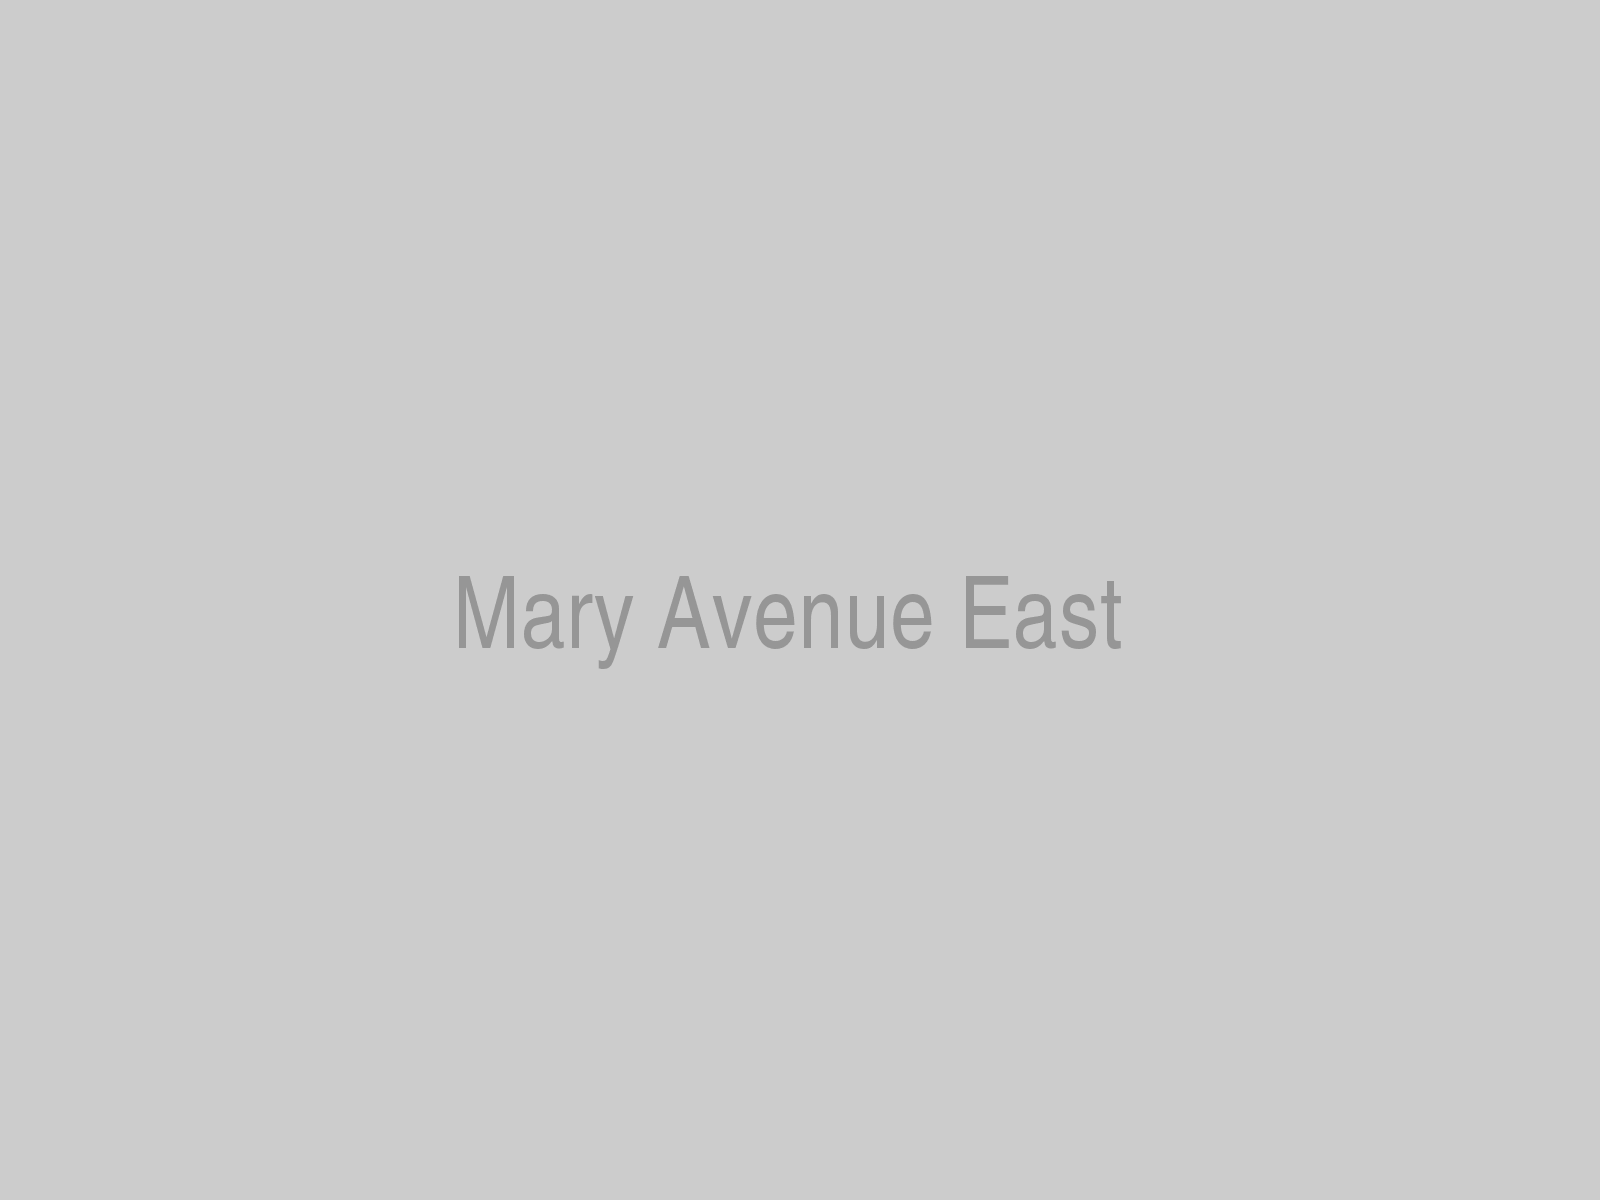 Mary Avenue East